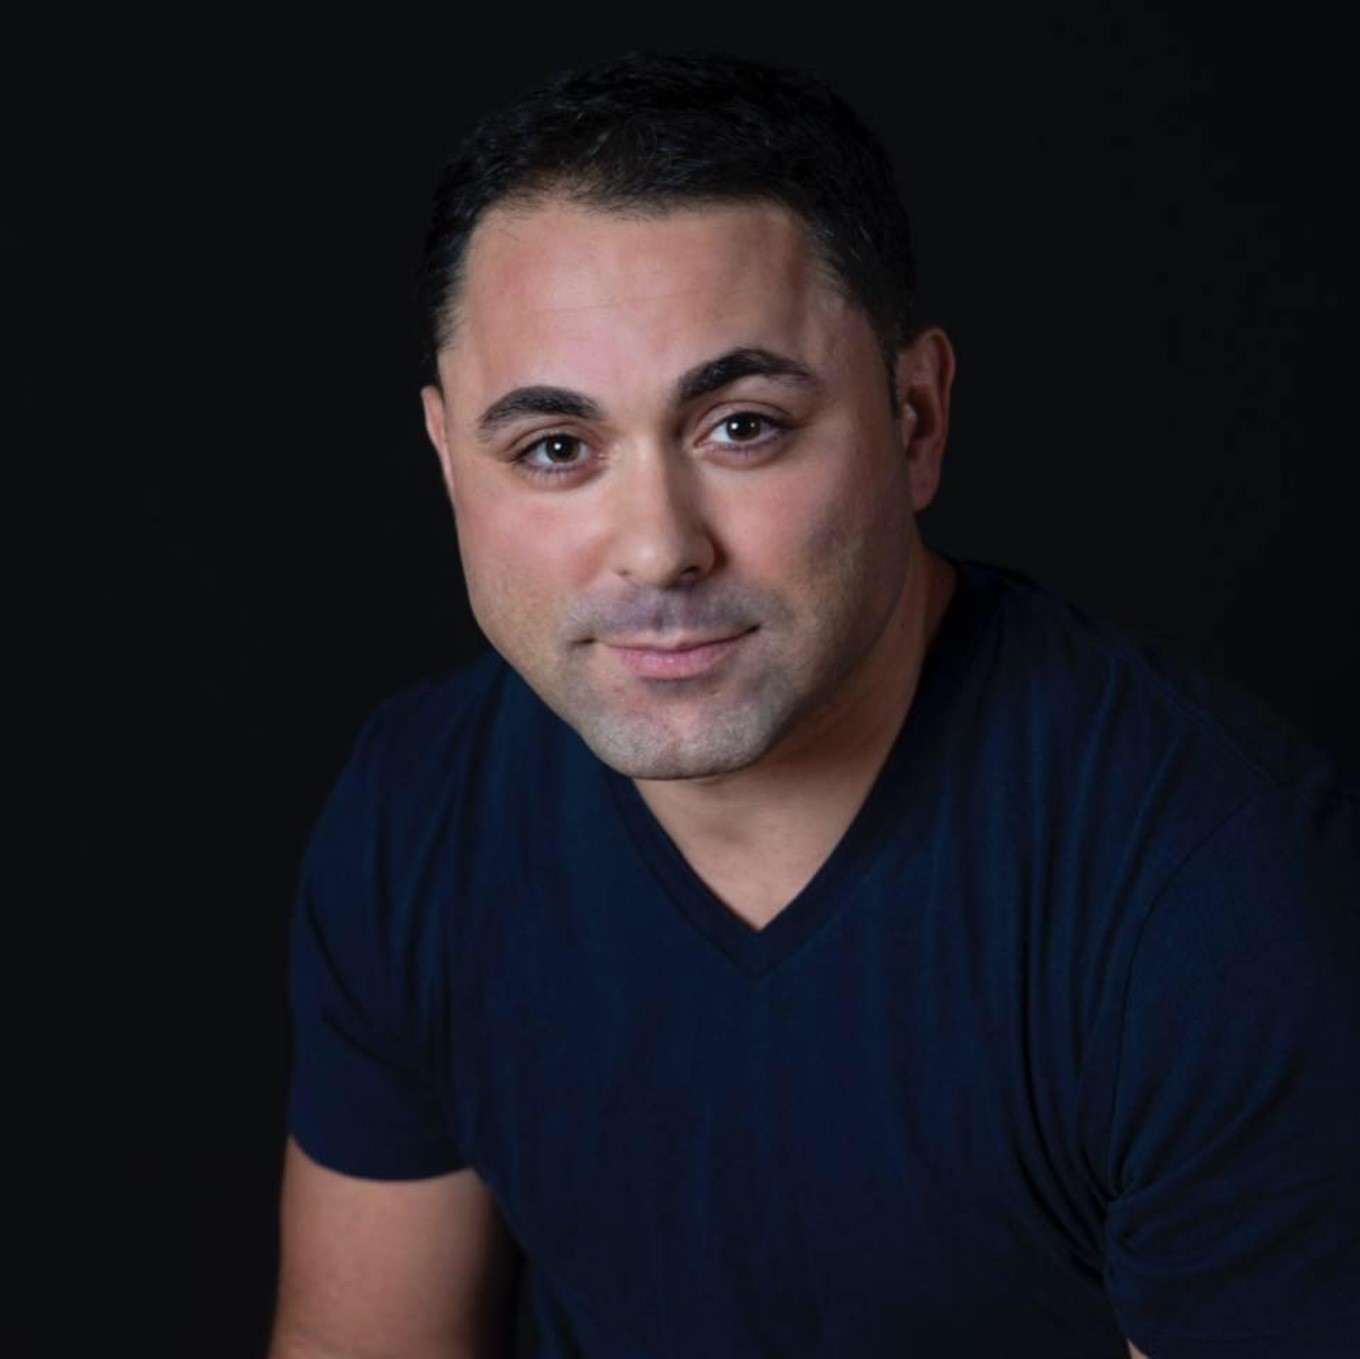 Anthony Rodia 8 Pm Show Funny Stop Comedy Club on Jun 03, 20:00@Funny Stop Comedy Club - Buy tickets and Get information on Funny Stop funnystop.online